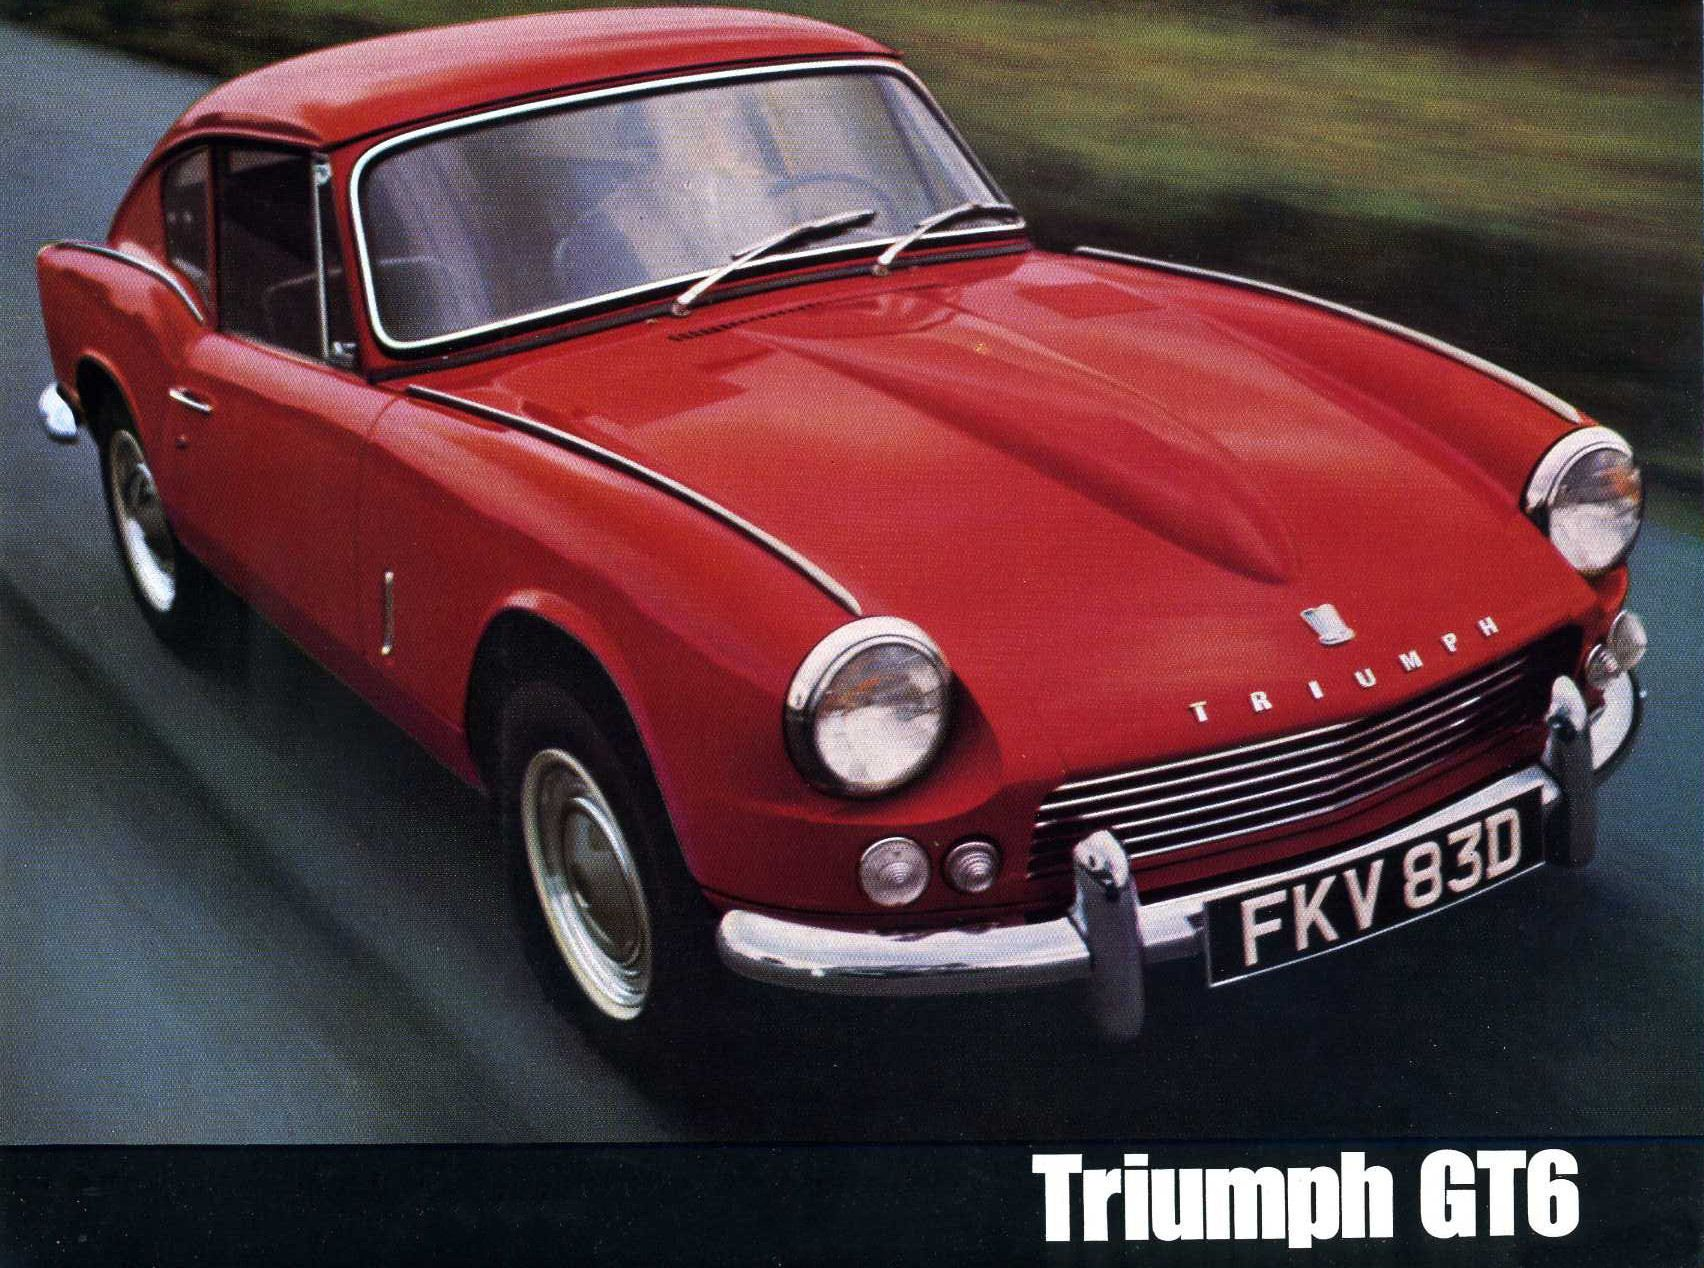 Triumph gt6 was an in line 6 cylinder the spitfire which was not